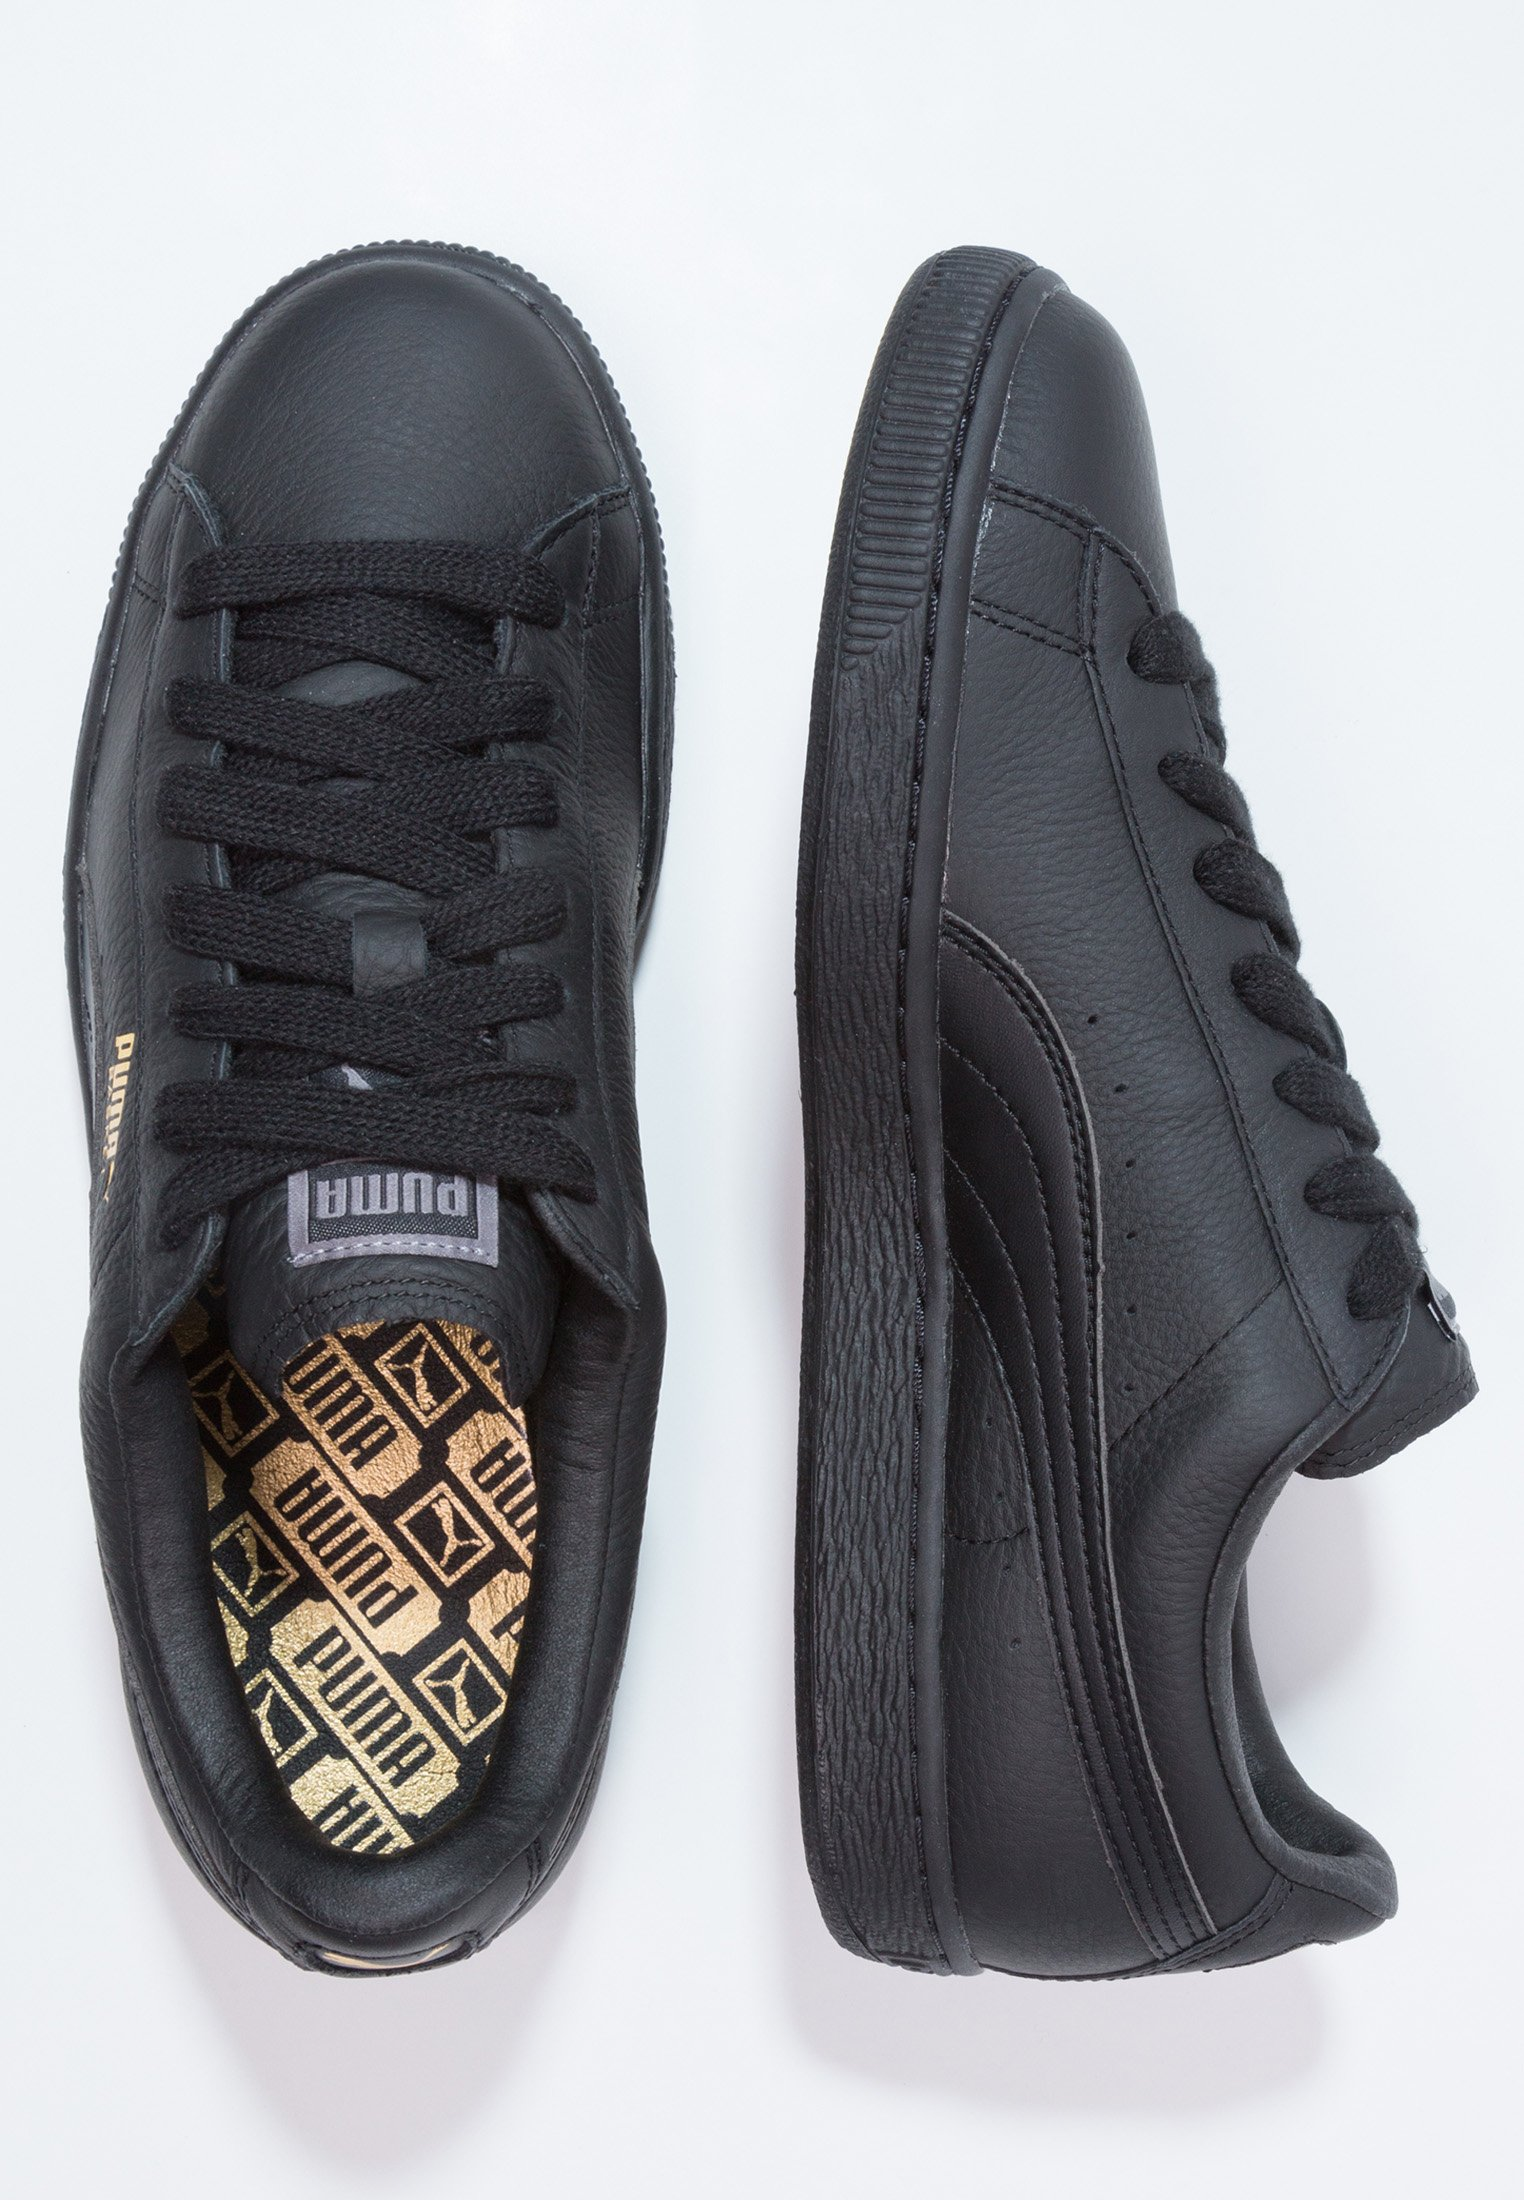 Puma BASKET CLASSIC - Sneakers basse - black/team gold